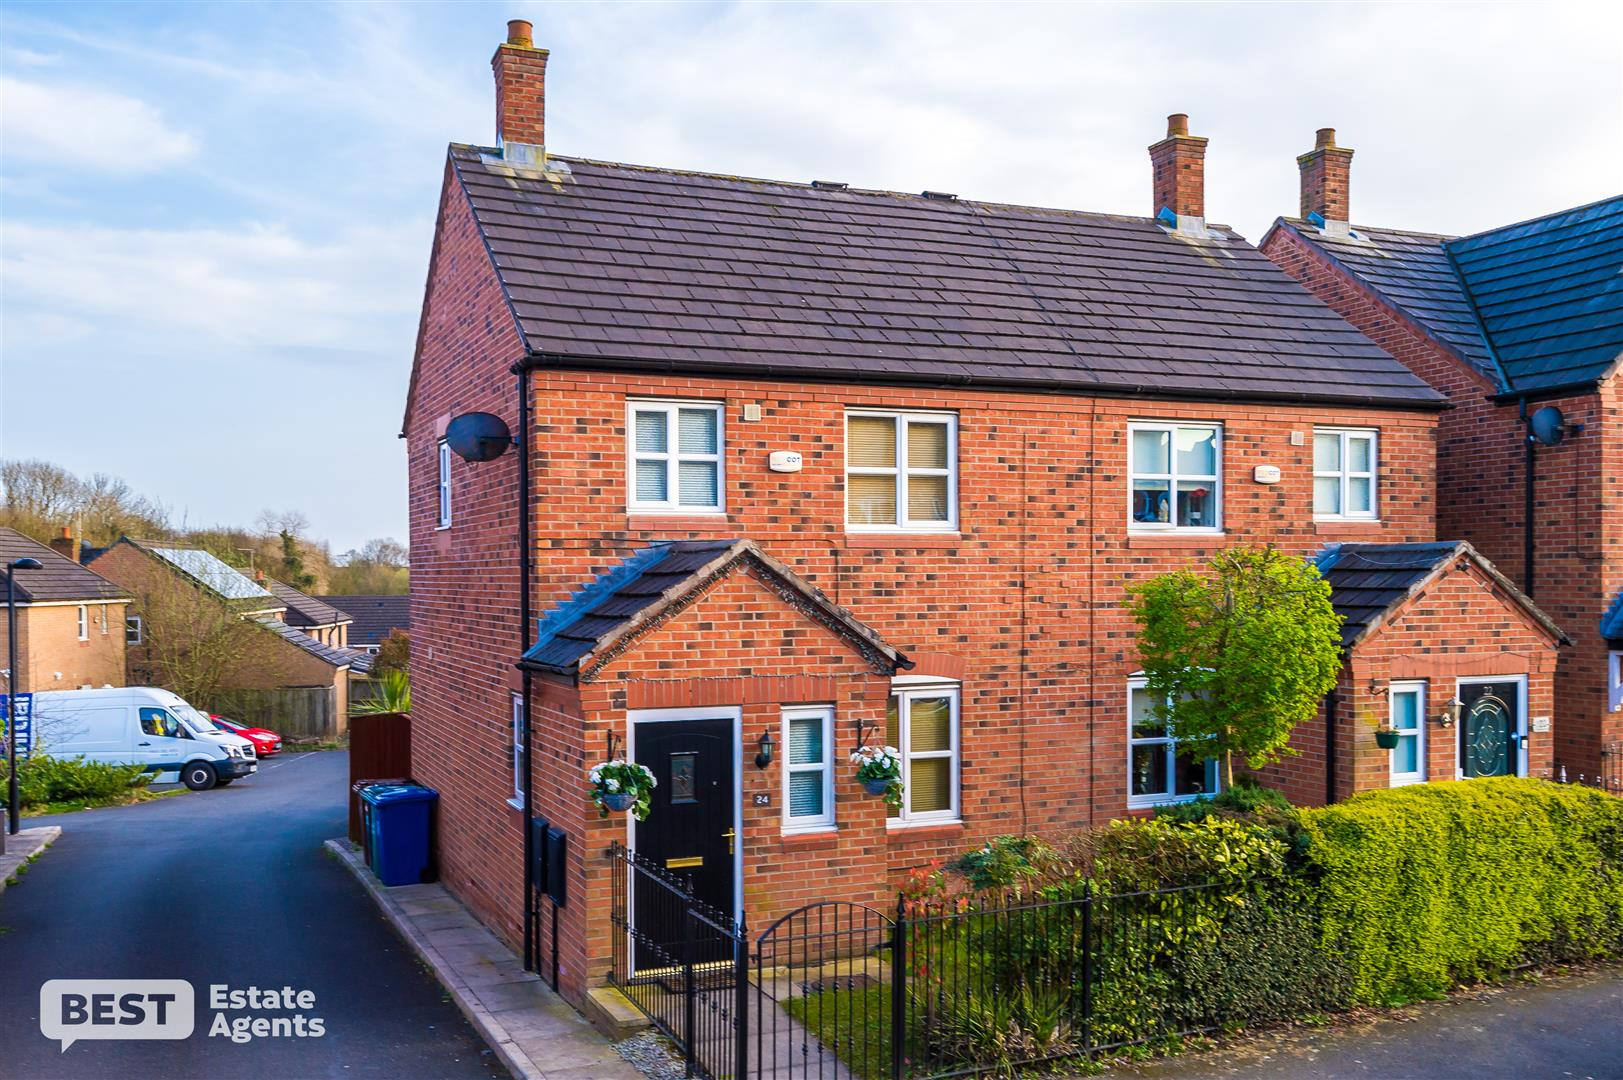 Gadfield Grove, Atherton, Greater Manchester, M46 0SJ